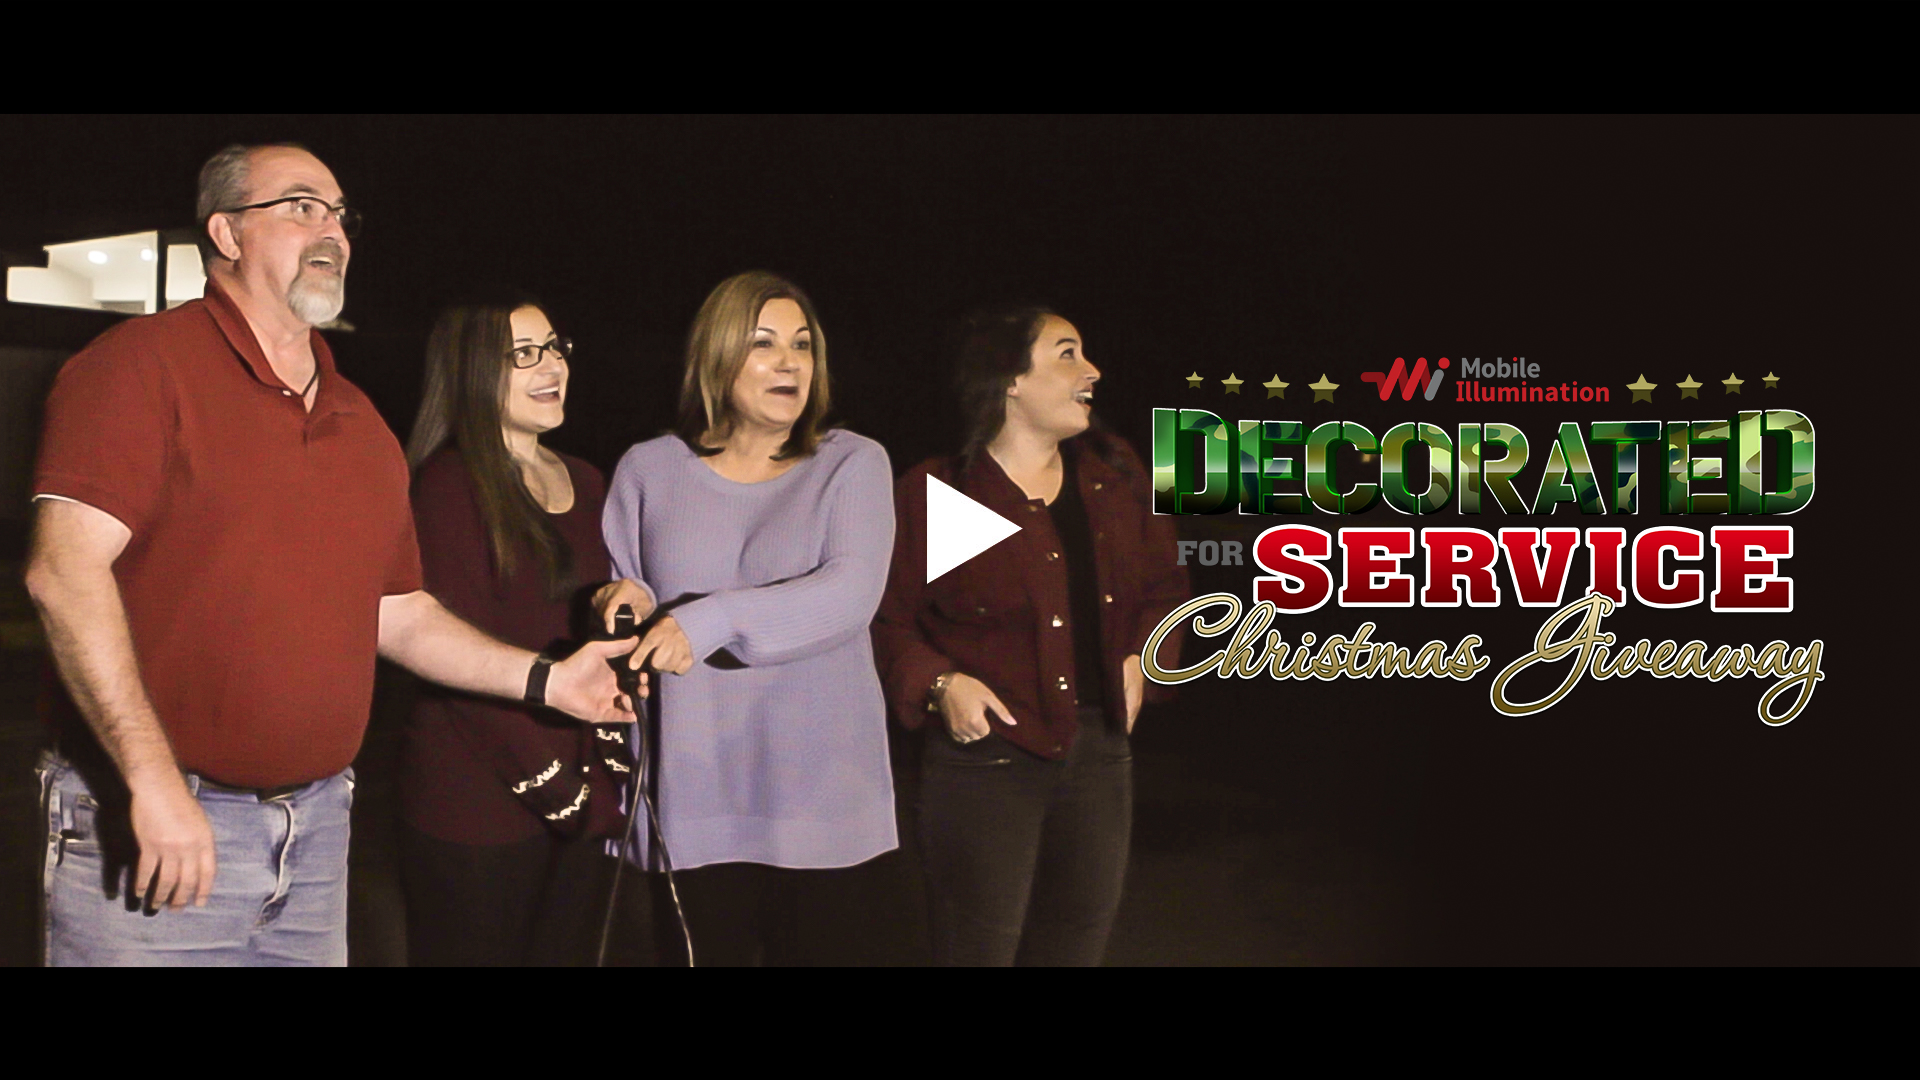 5th Annual Decorated for Service Christmas Giveaway 2018